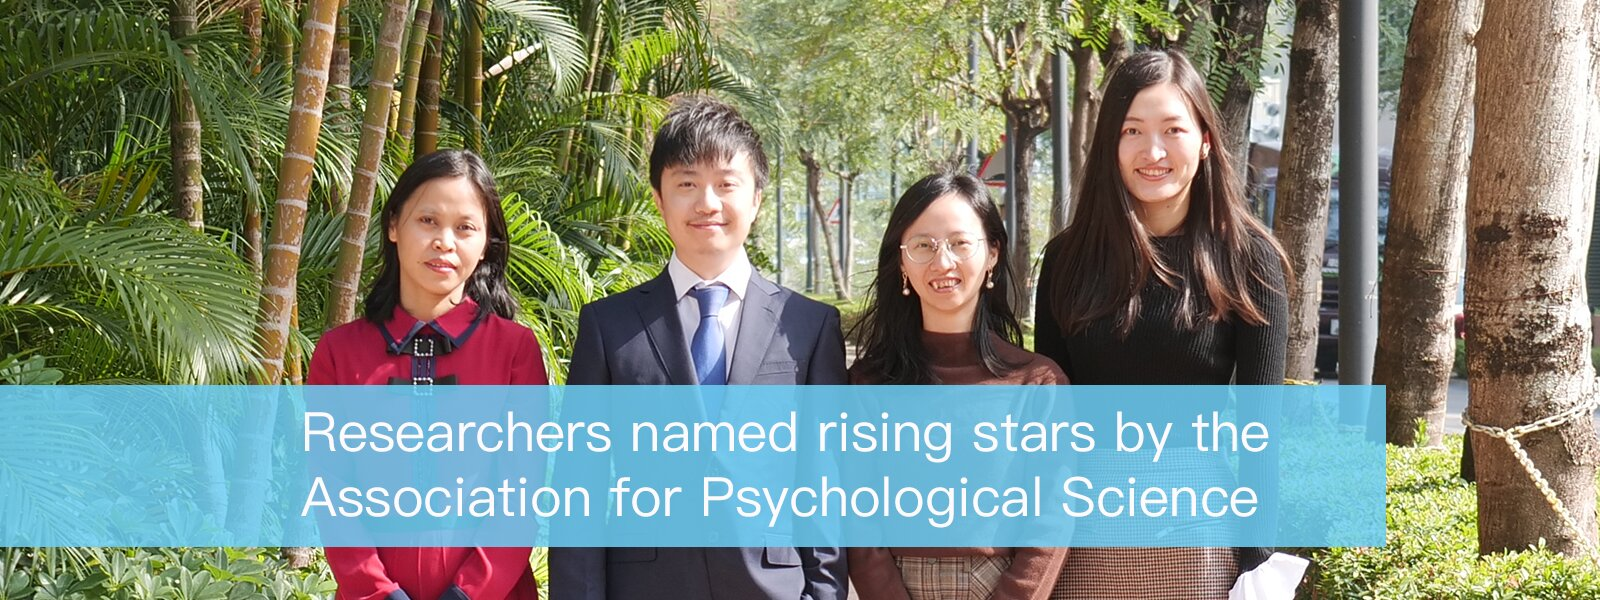 Researchers Named Rising Stars by the Association for Psychological Science